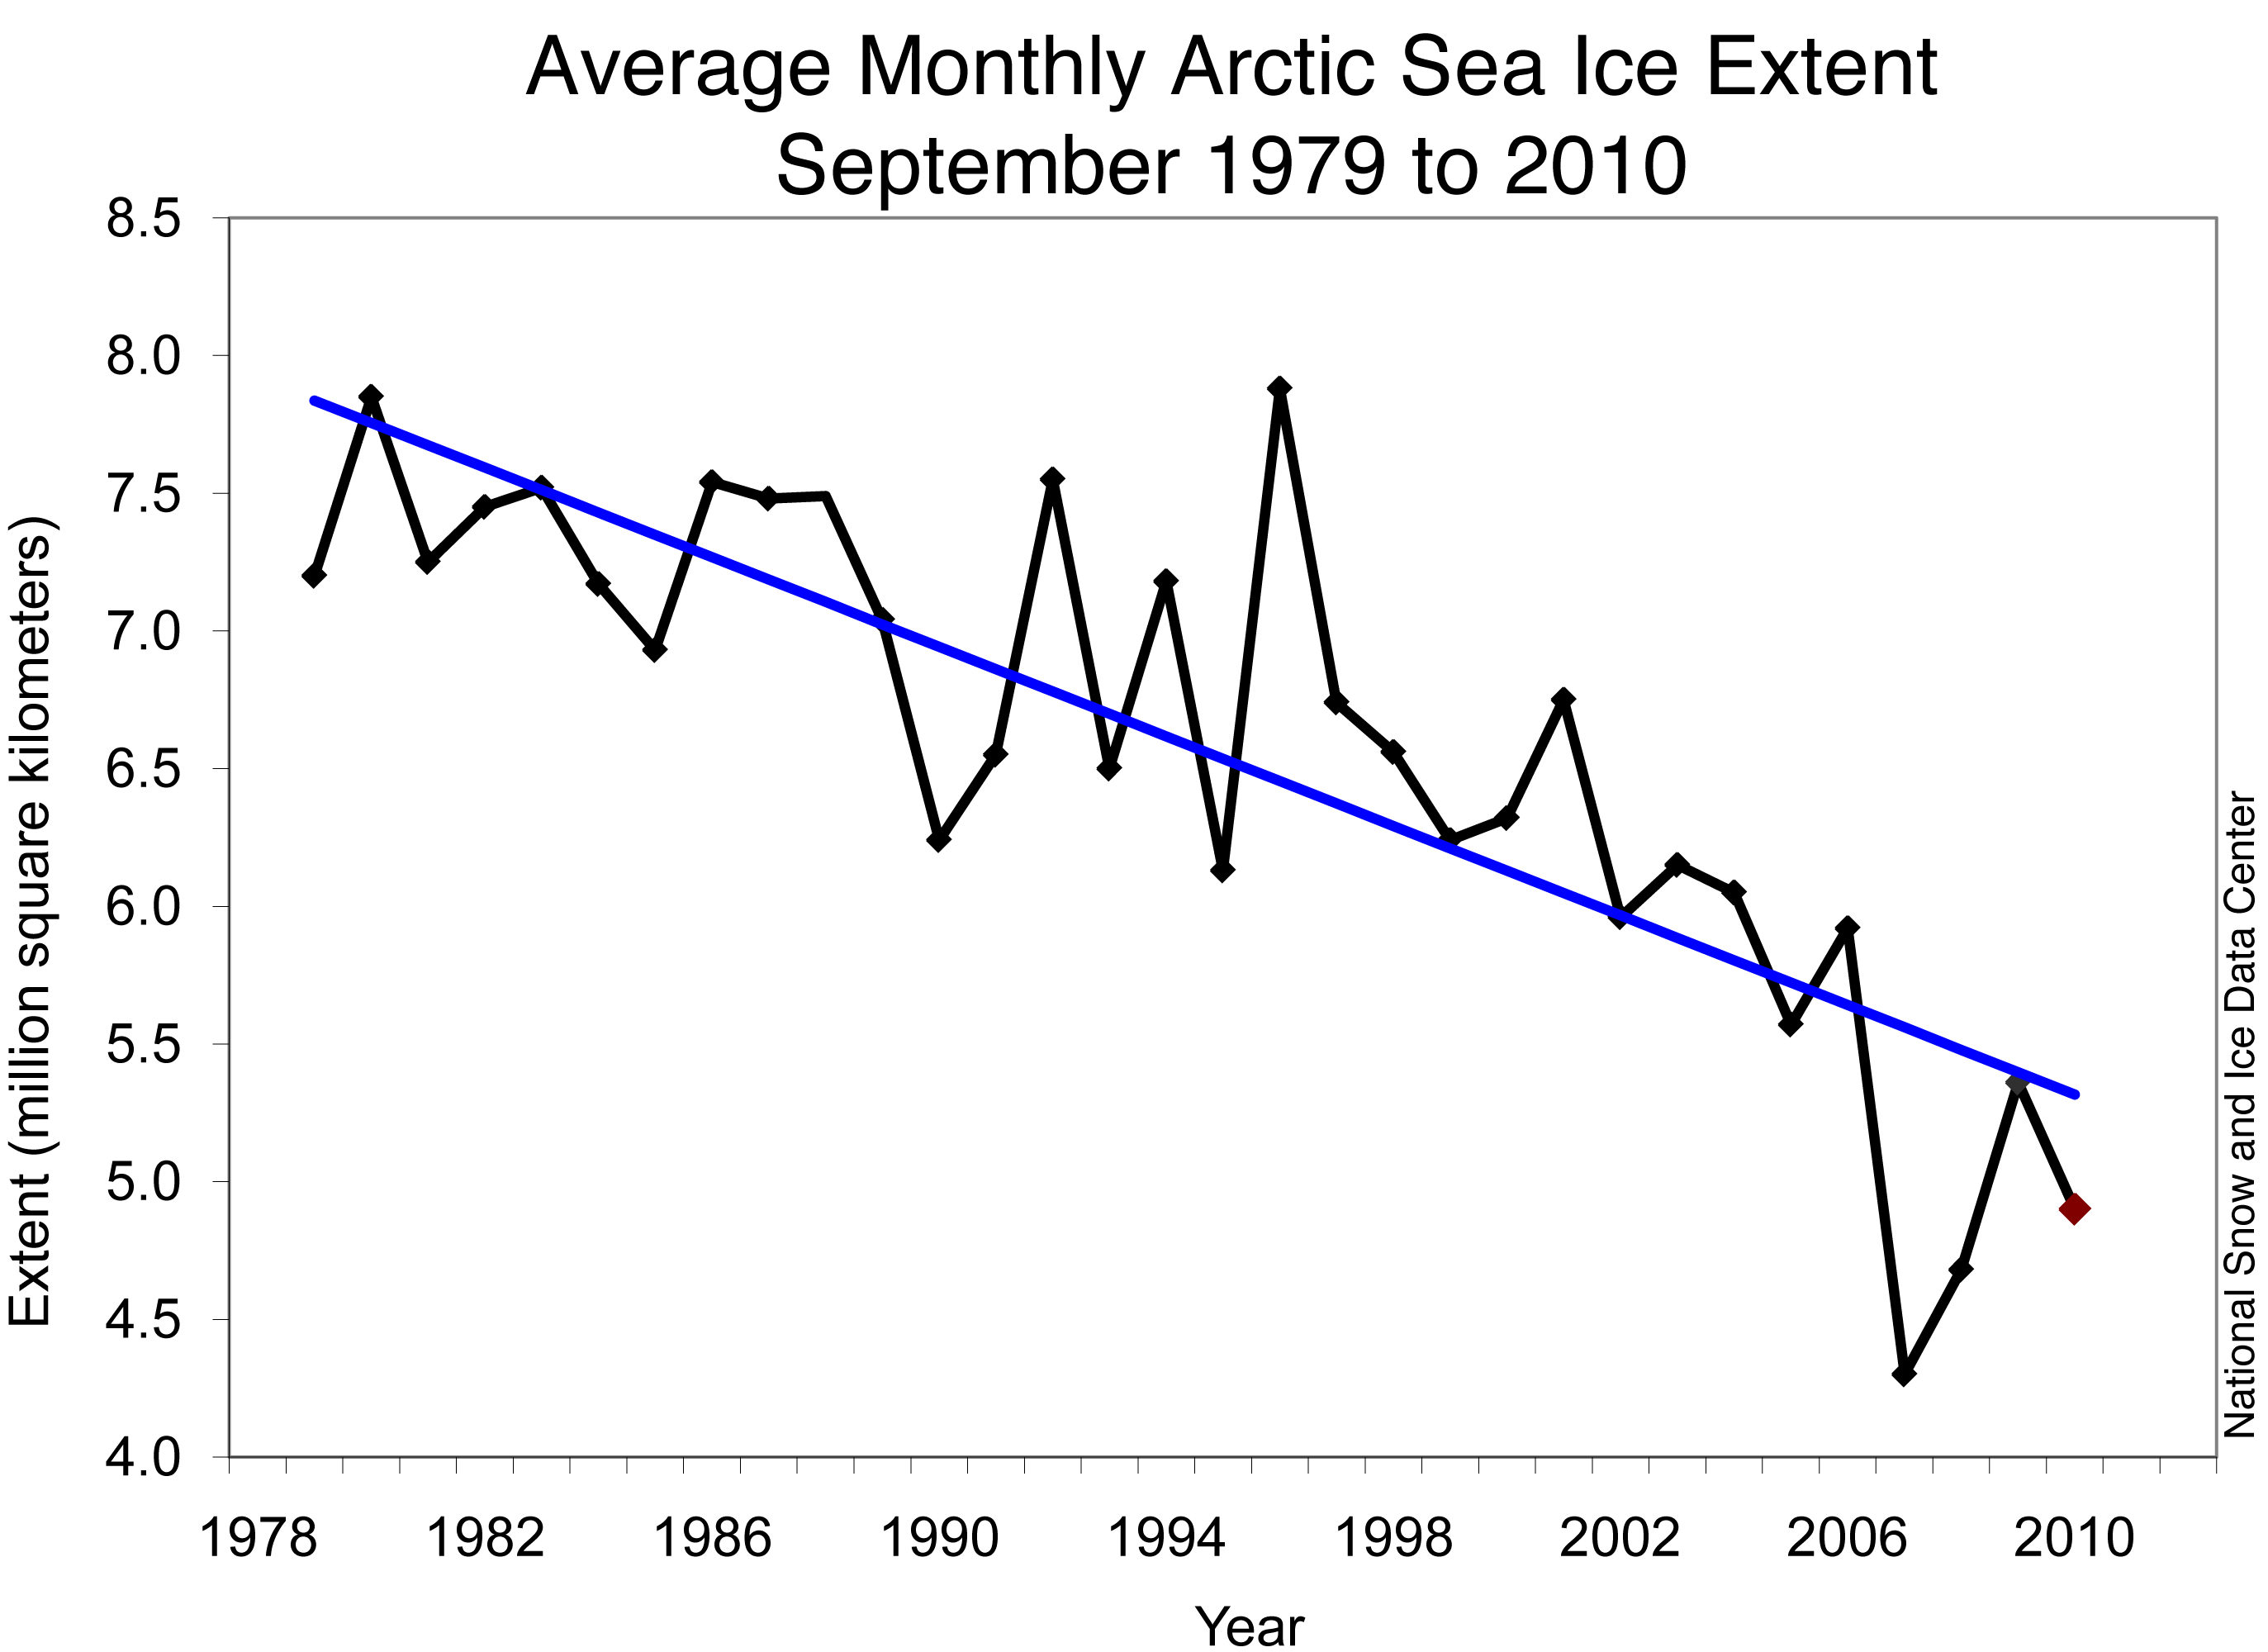 changes have been made that affect the global template - human activity is driving retreat of arctic sea ice